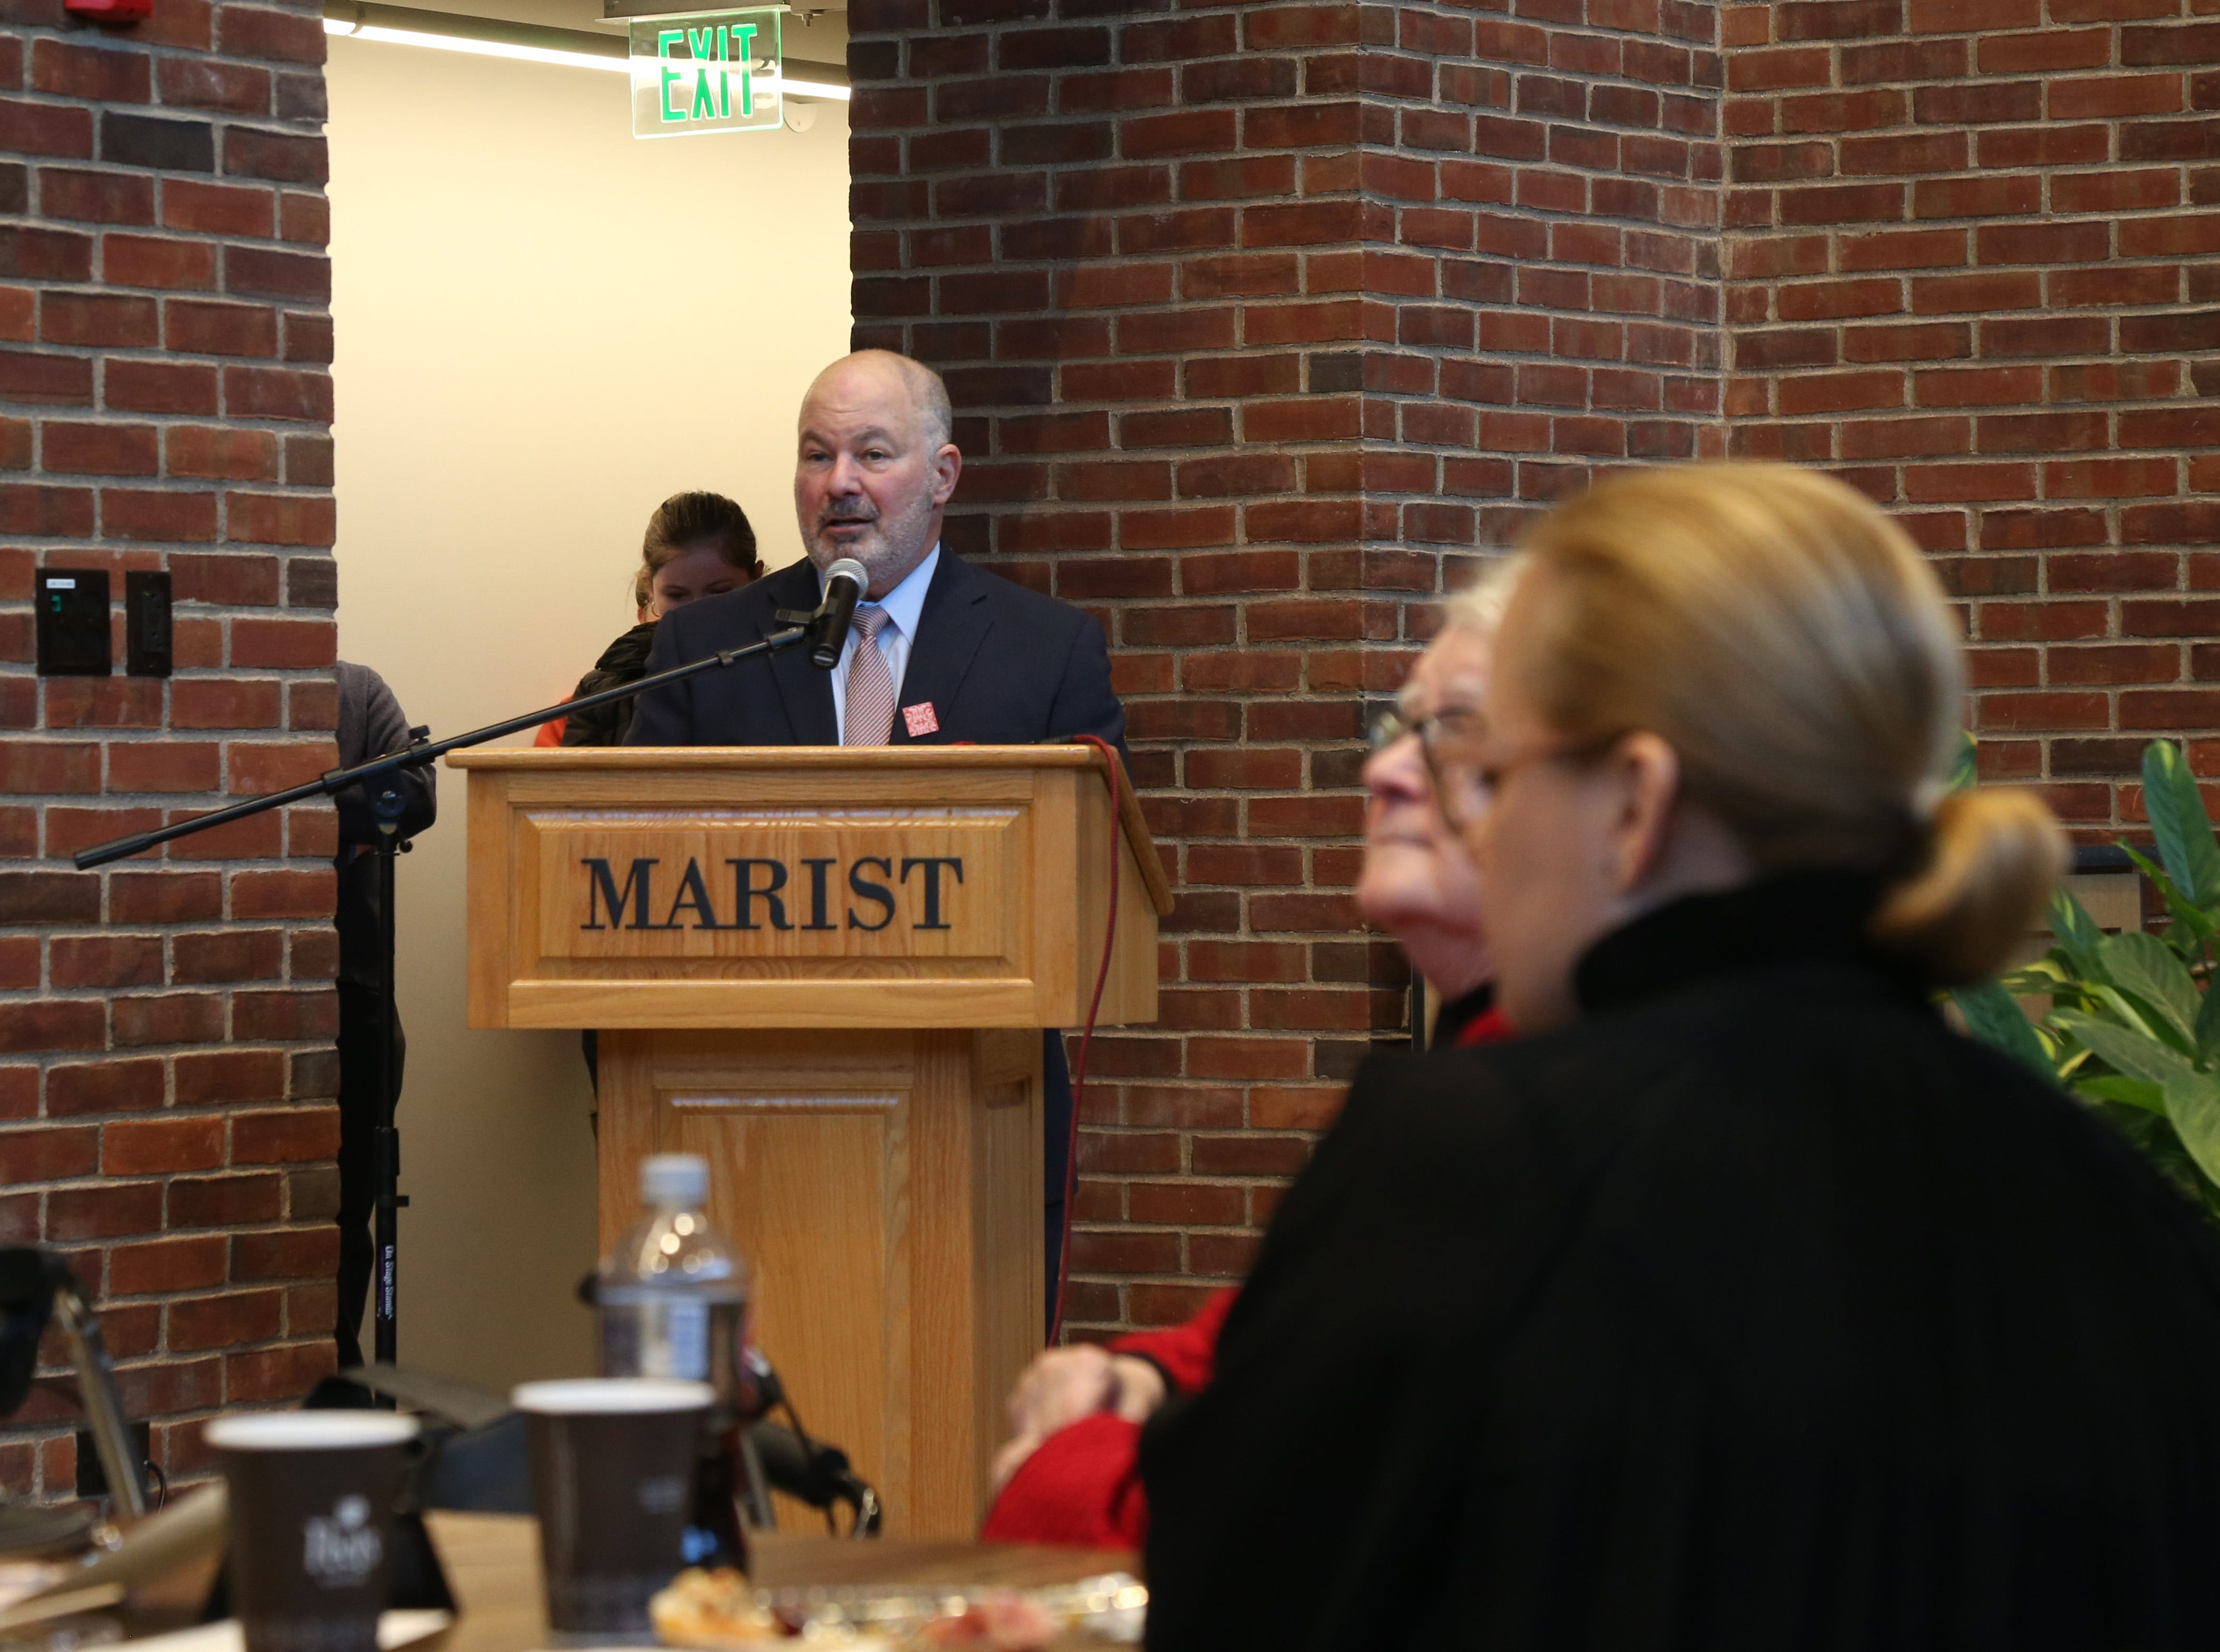 Marist College president David Yellen speaks during Friday's tour of the Steel Plant Studios in Poughkeepsie on February 1, 2019.